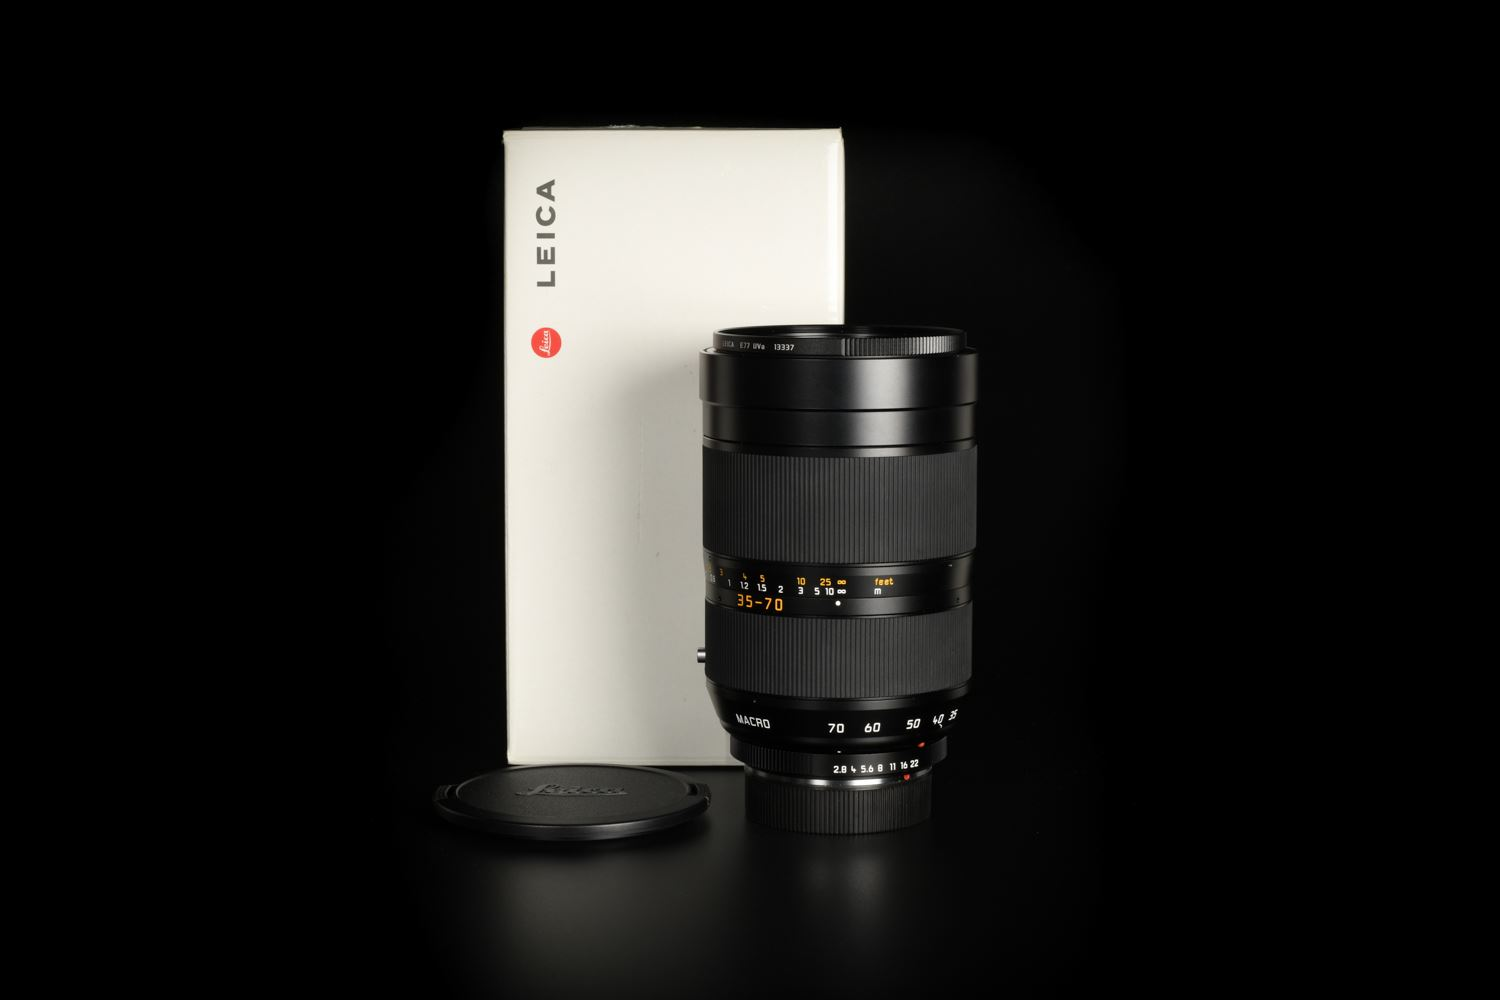 Picture of Leica Vario-Elmarit-R 35-70mm f/2.8 ASPH ROM